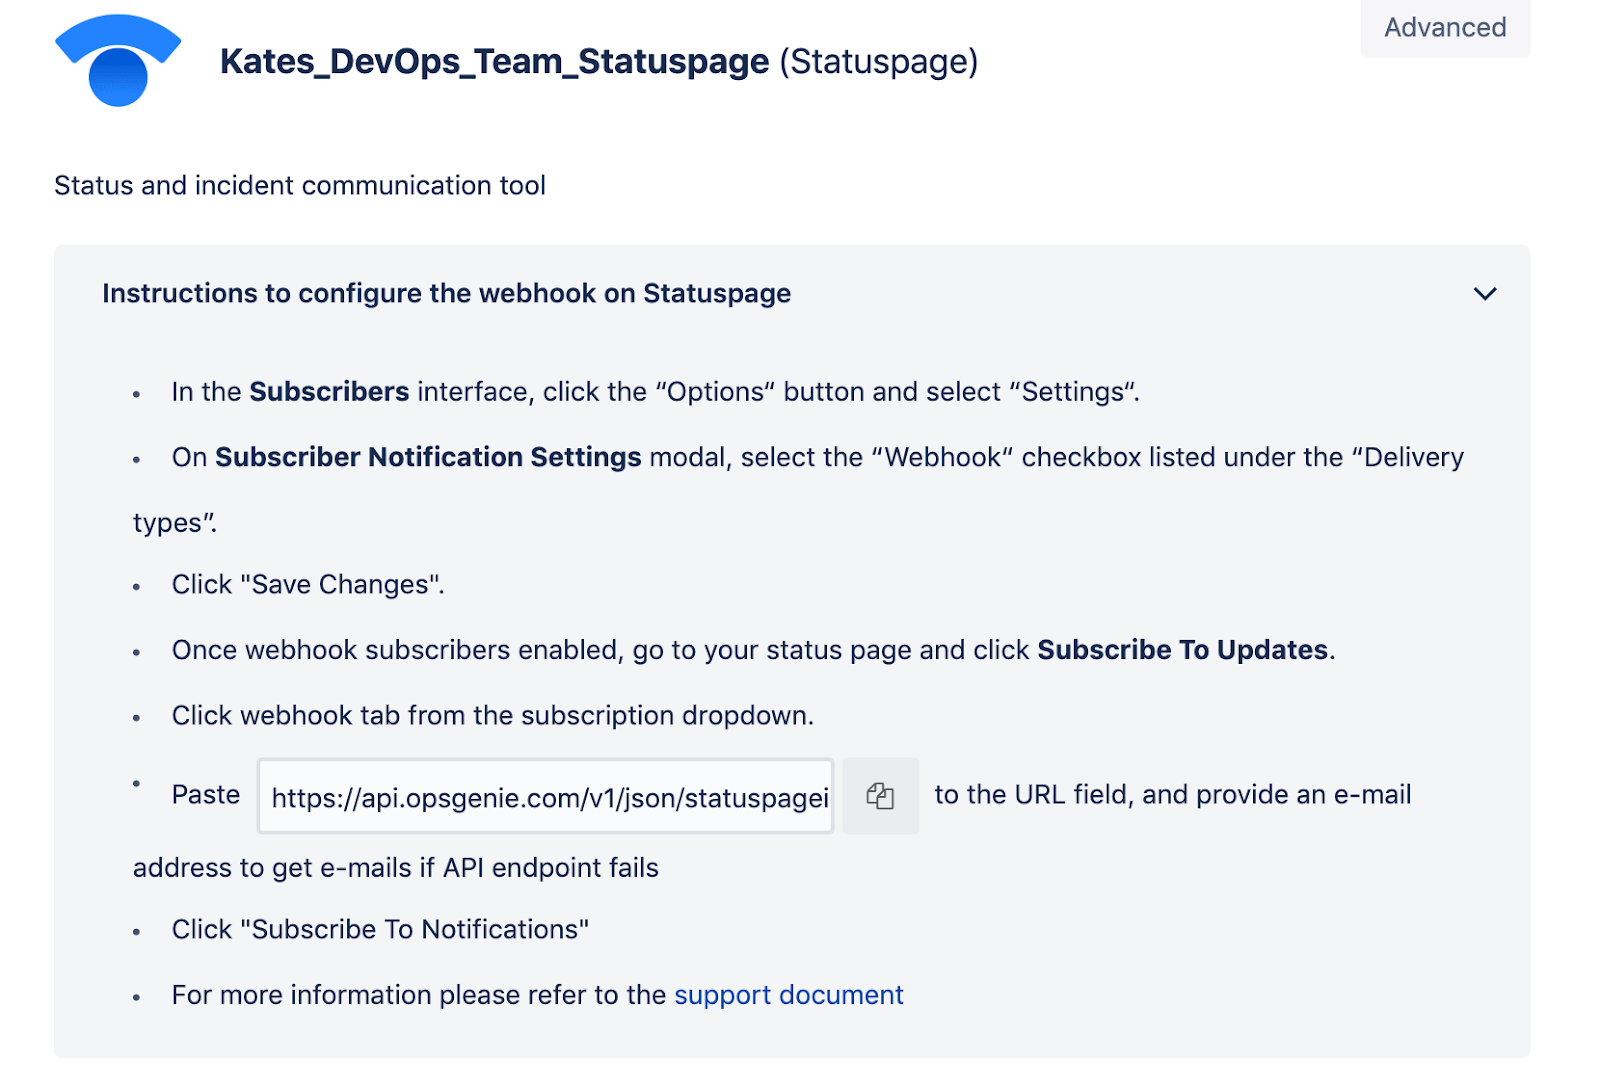 Instructions to configure webhook on Statuspage